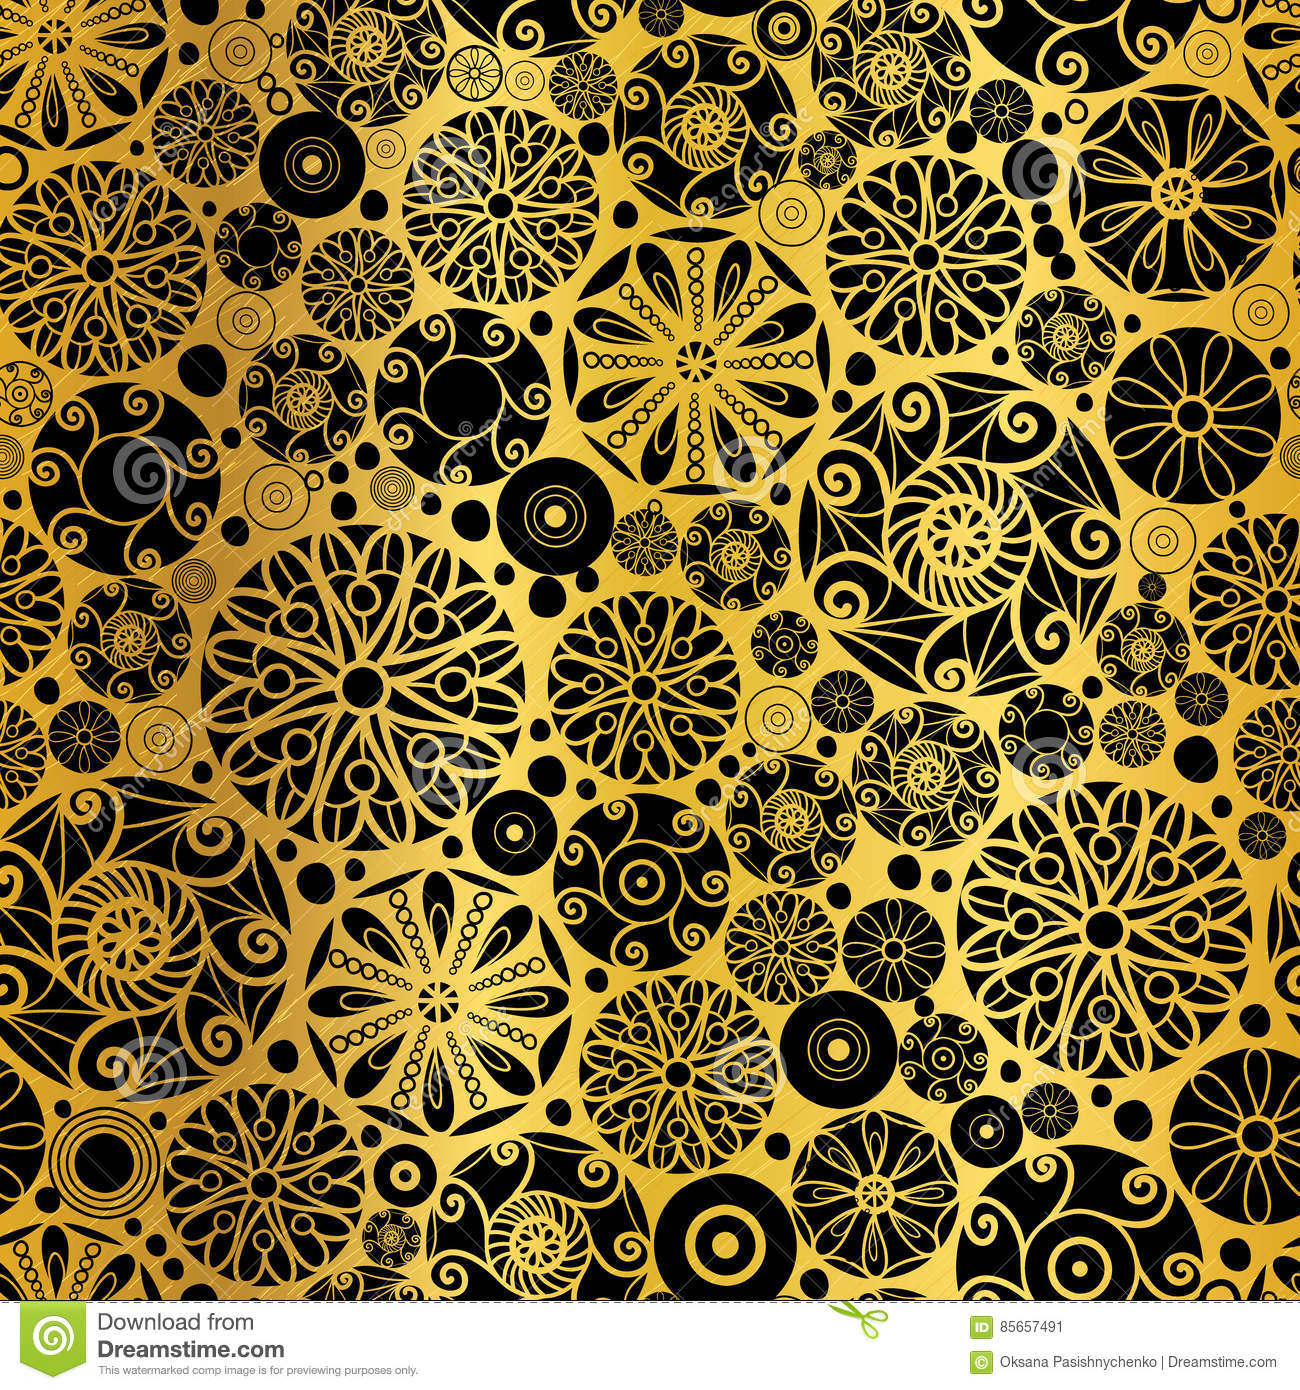 Vector Black Gold Abstract Doodle Circles Seamless Pattern